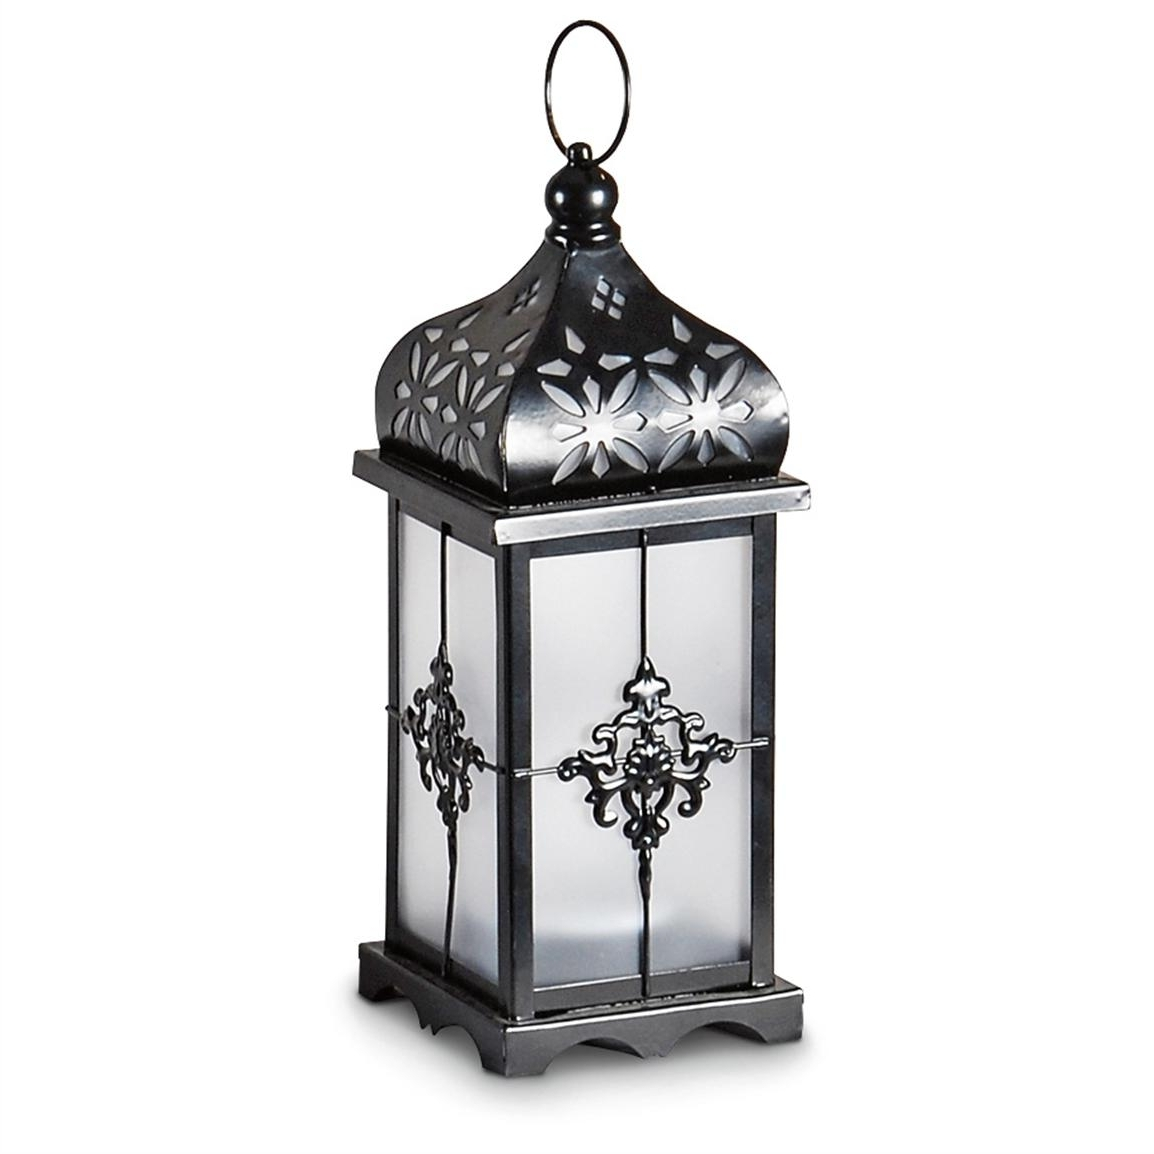 2 Filigree Solar Lanterns – 232102, Solar & Outdoor Lighting At In Most Popular Outdoor Decorative Lanterns (View 1 of 20)